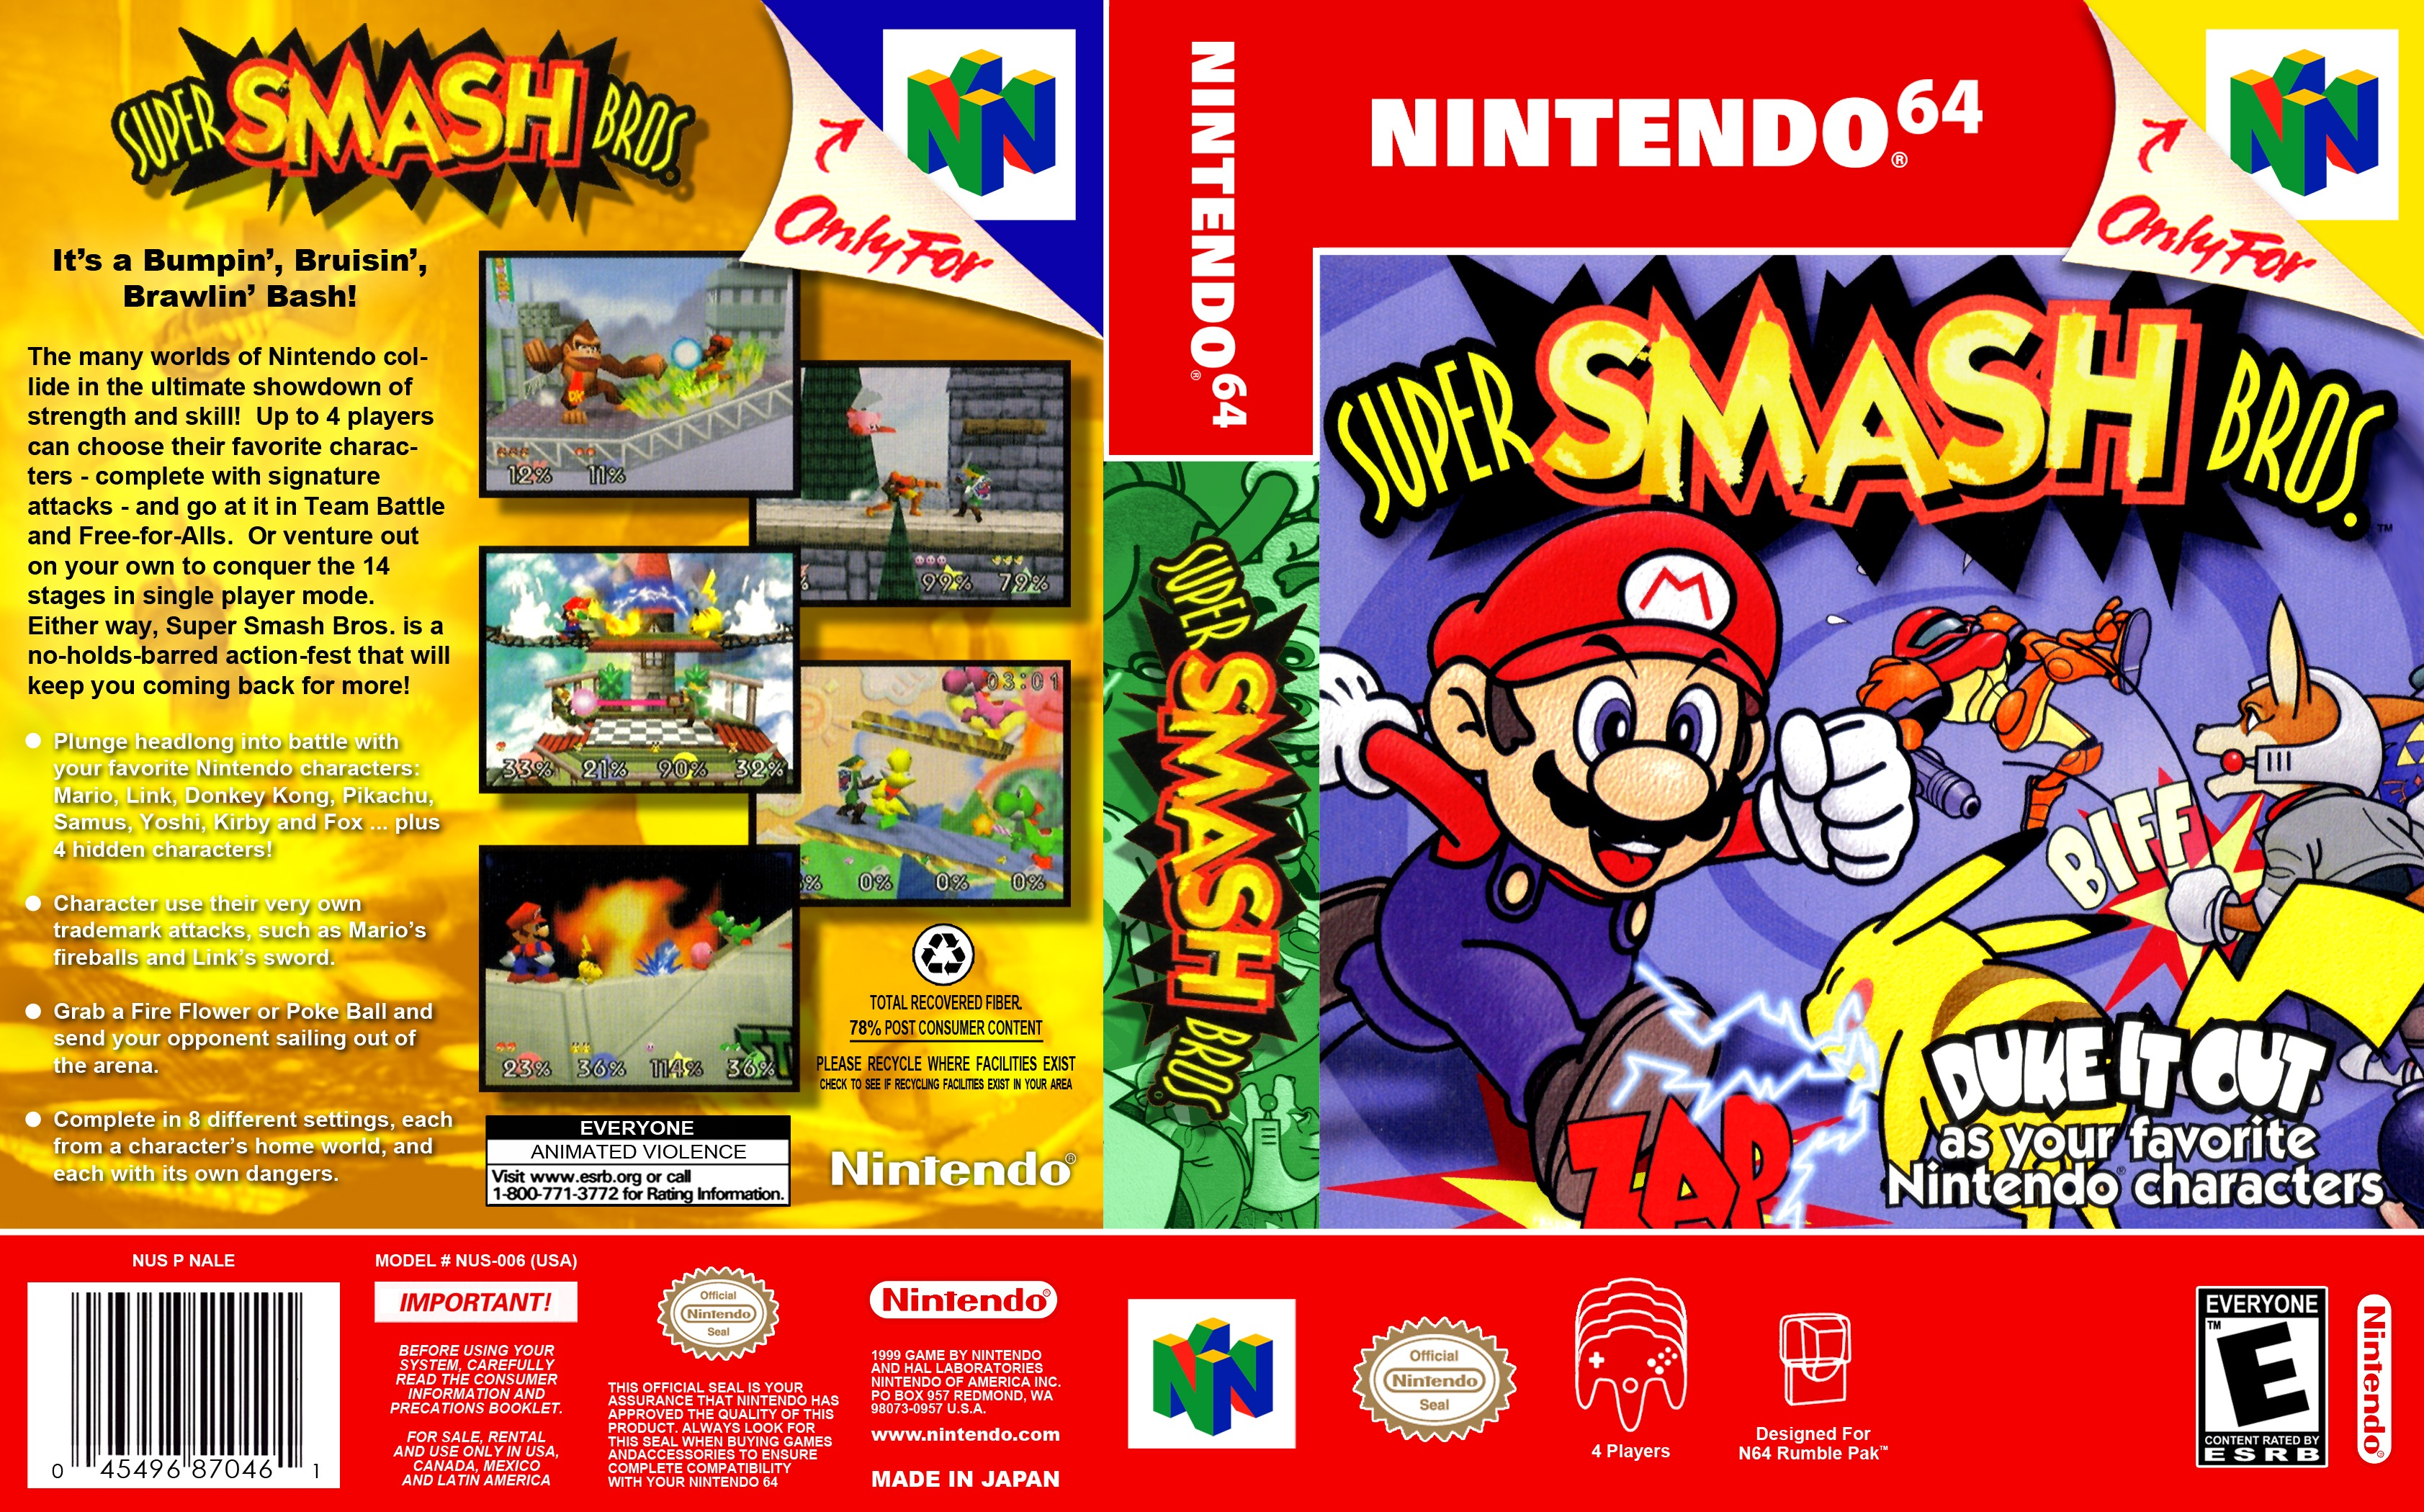 PRX » Piece » Smash Bros 64